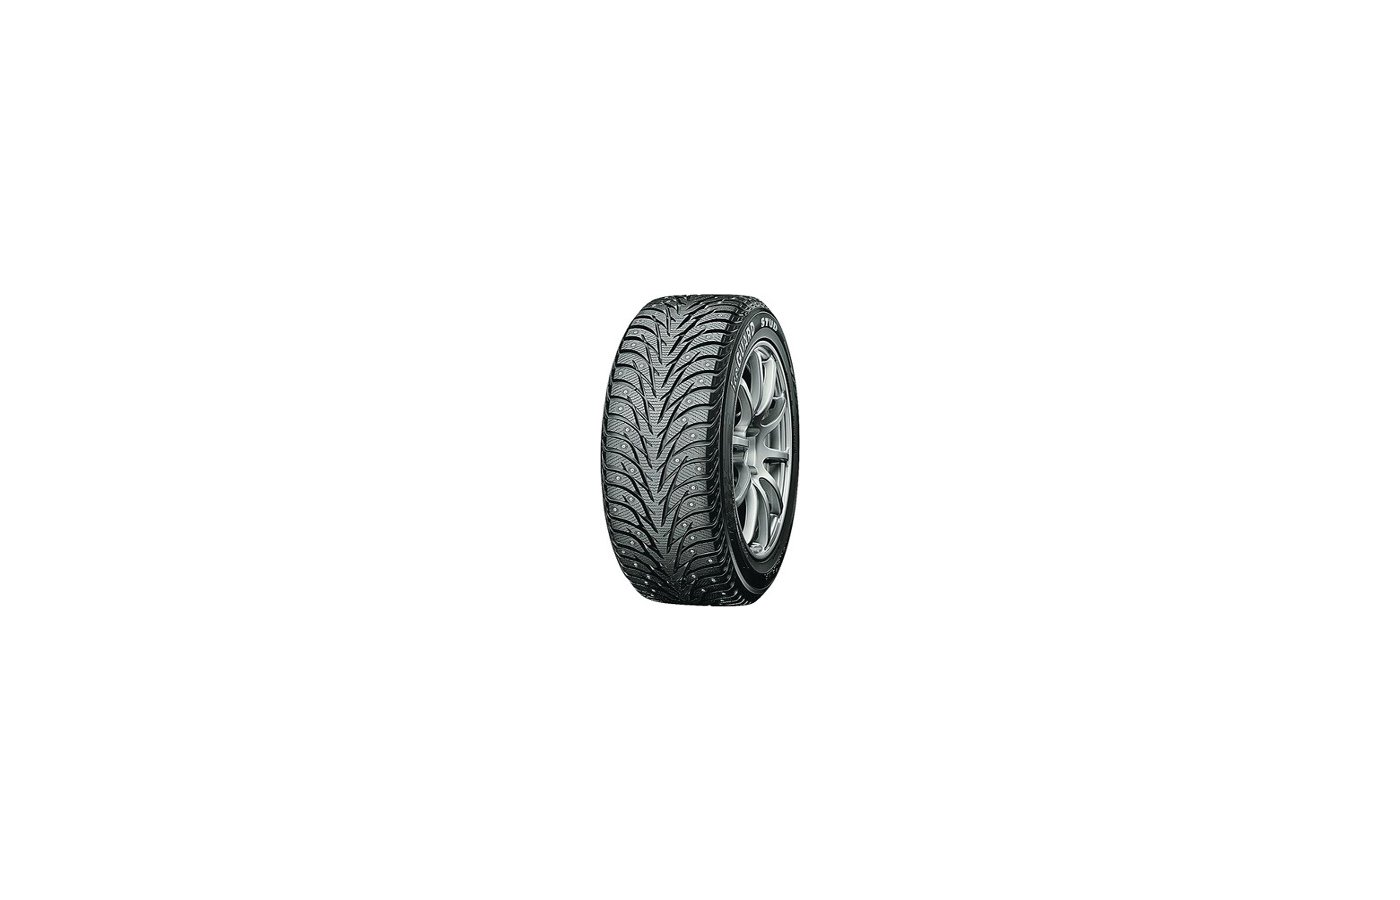 Шина Yokohama Ice Guard IG35 Plus 215/60 R16 TL 99T XL шип